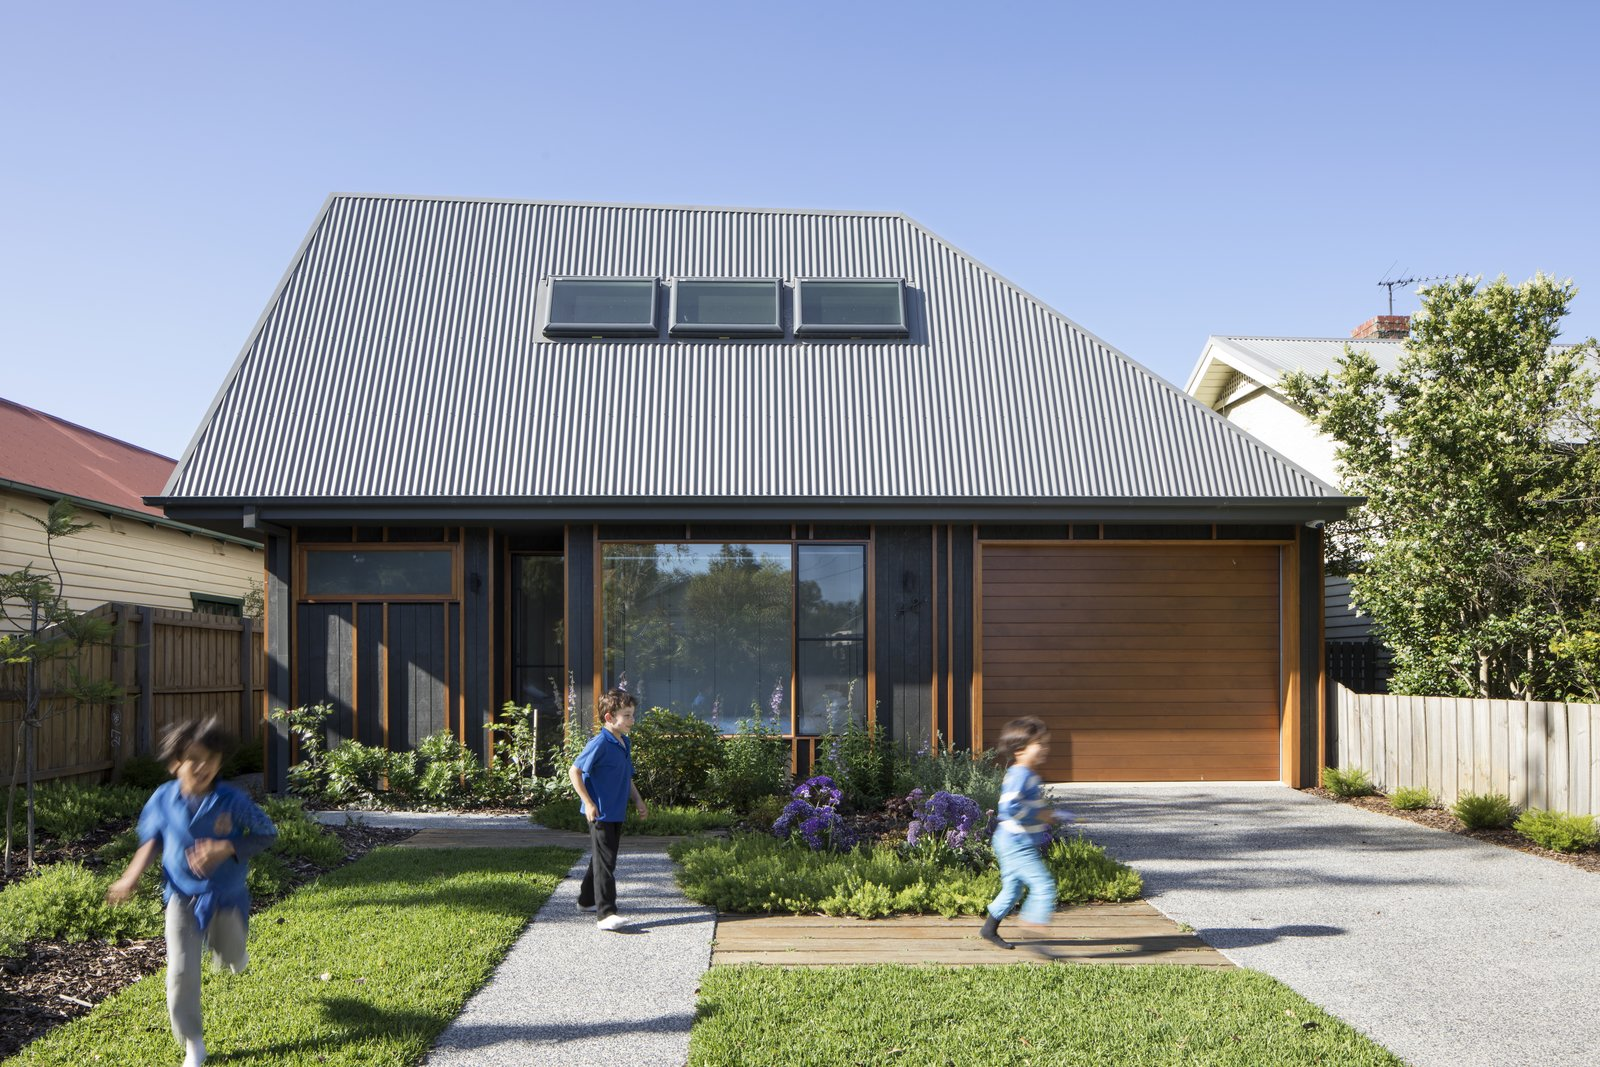 Exterior, Metal Roof Material, House Building Type, and Wood Siding Material Porjazoski thought that reinterpreting a traditional pitched roof in a highly angled metal form would be  Photo 2 of 10 in A Family Home in Australia Features a Playful Version of the Classic Pitched Roof